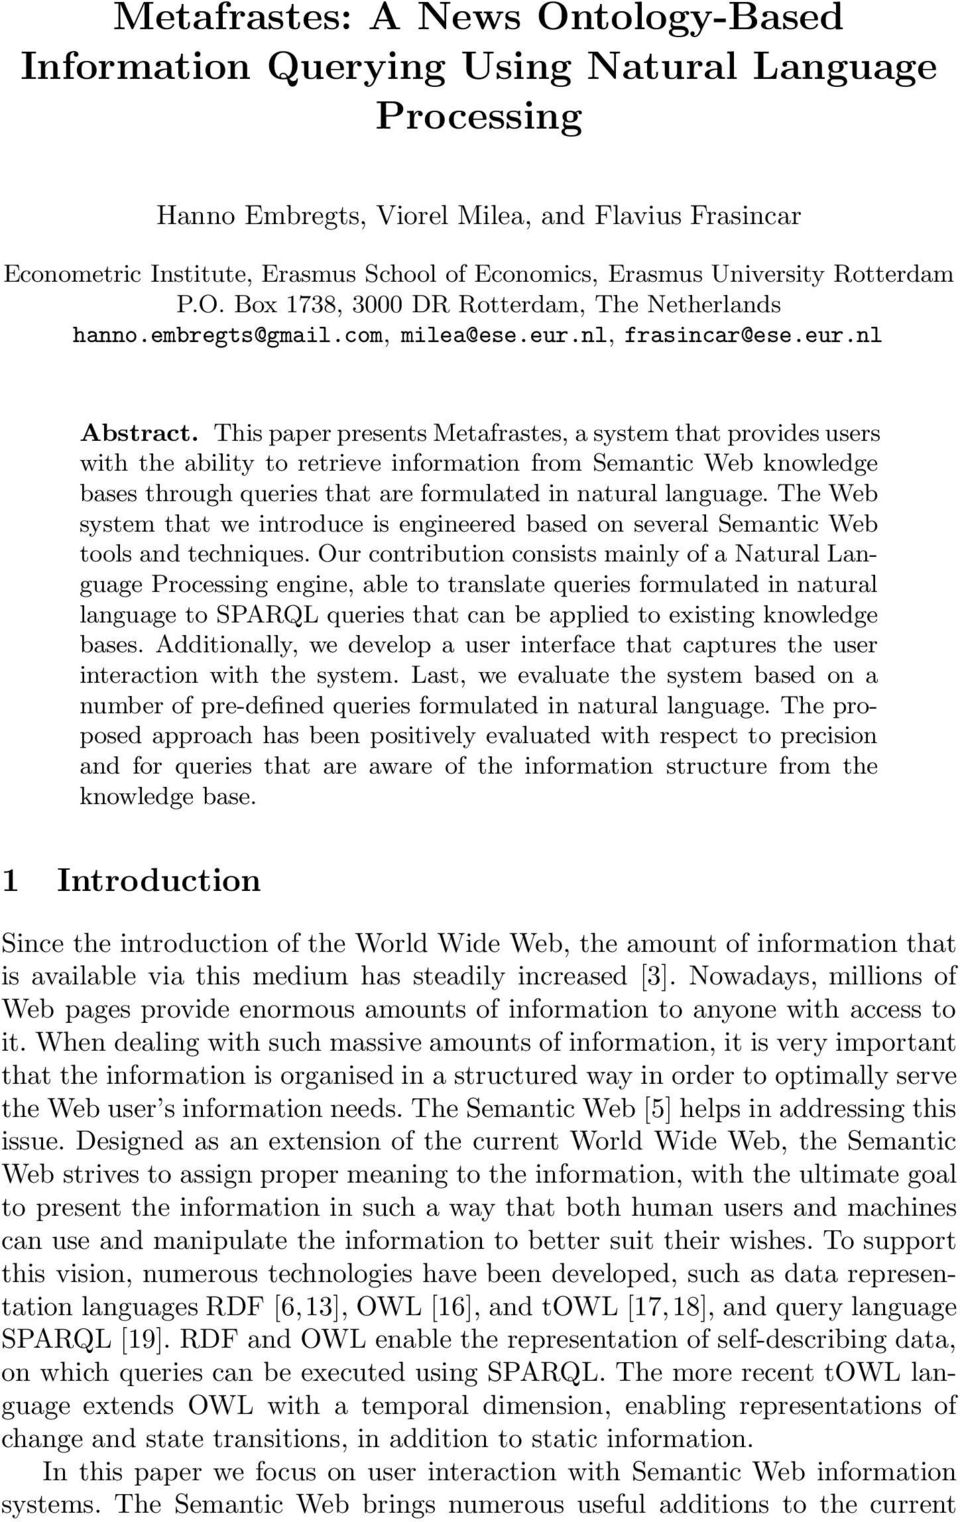 This paper presents Metafrastes, a system that provides users with the ability to retrieve information from Semantic Web knowledge bases through queries that are formulated in natural language.